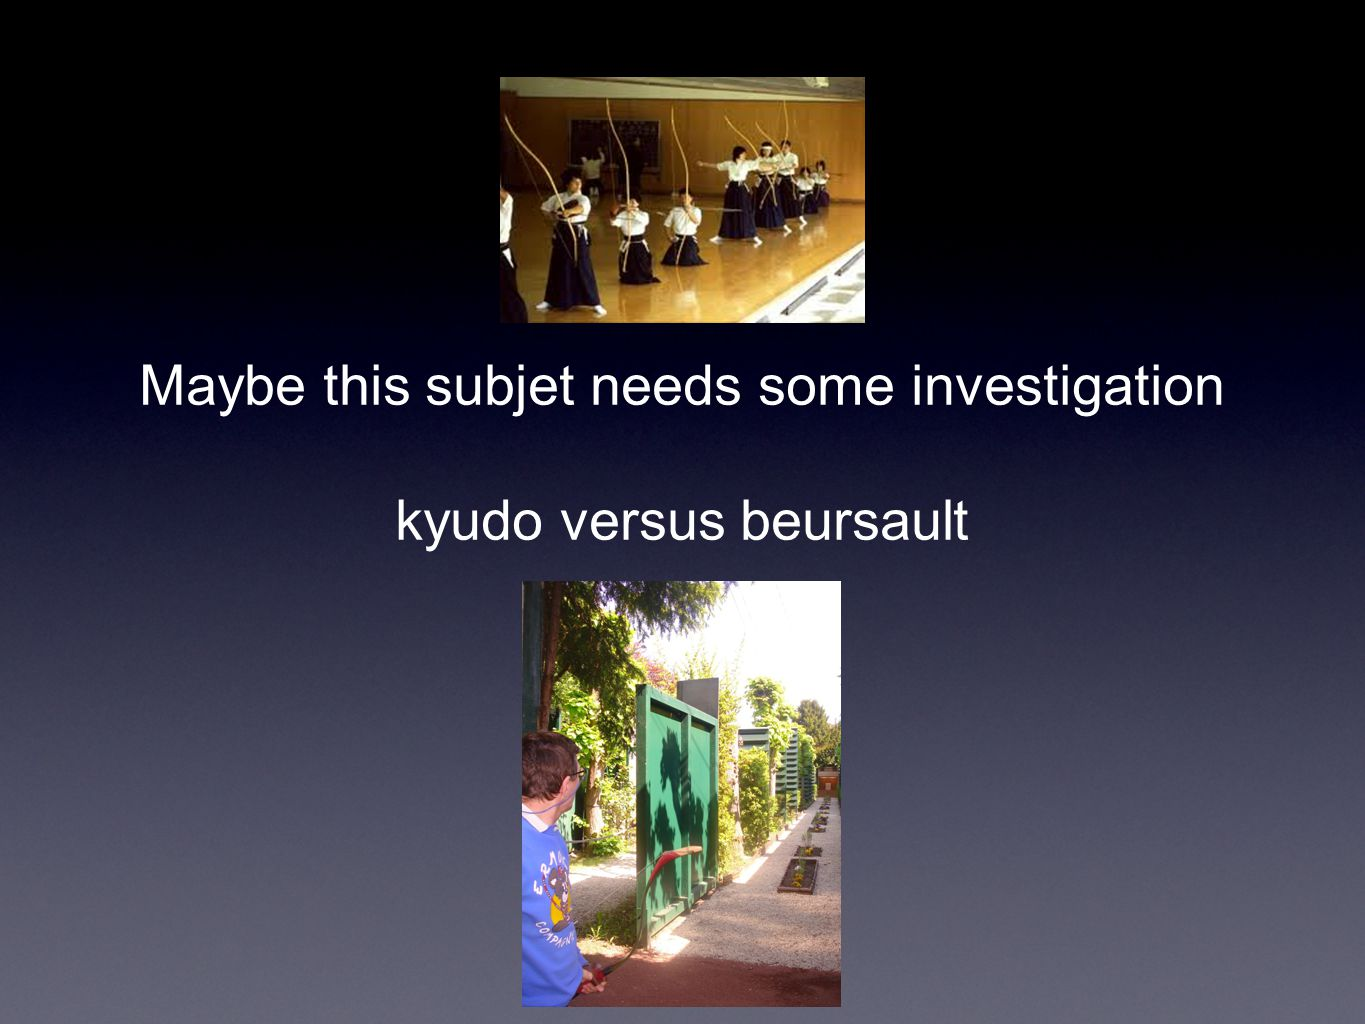 Maybe this subjet needs some investigation kyudo versus beursault